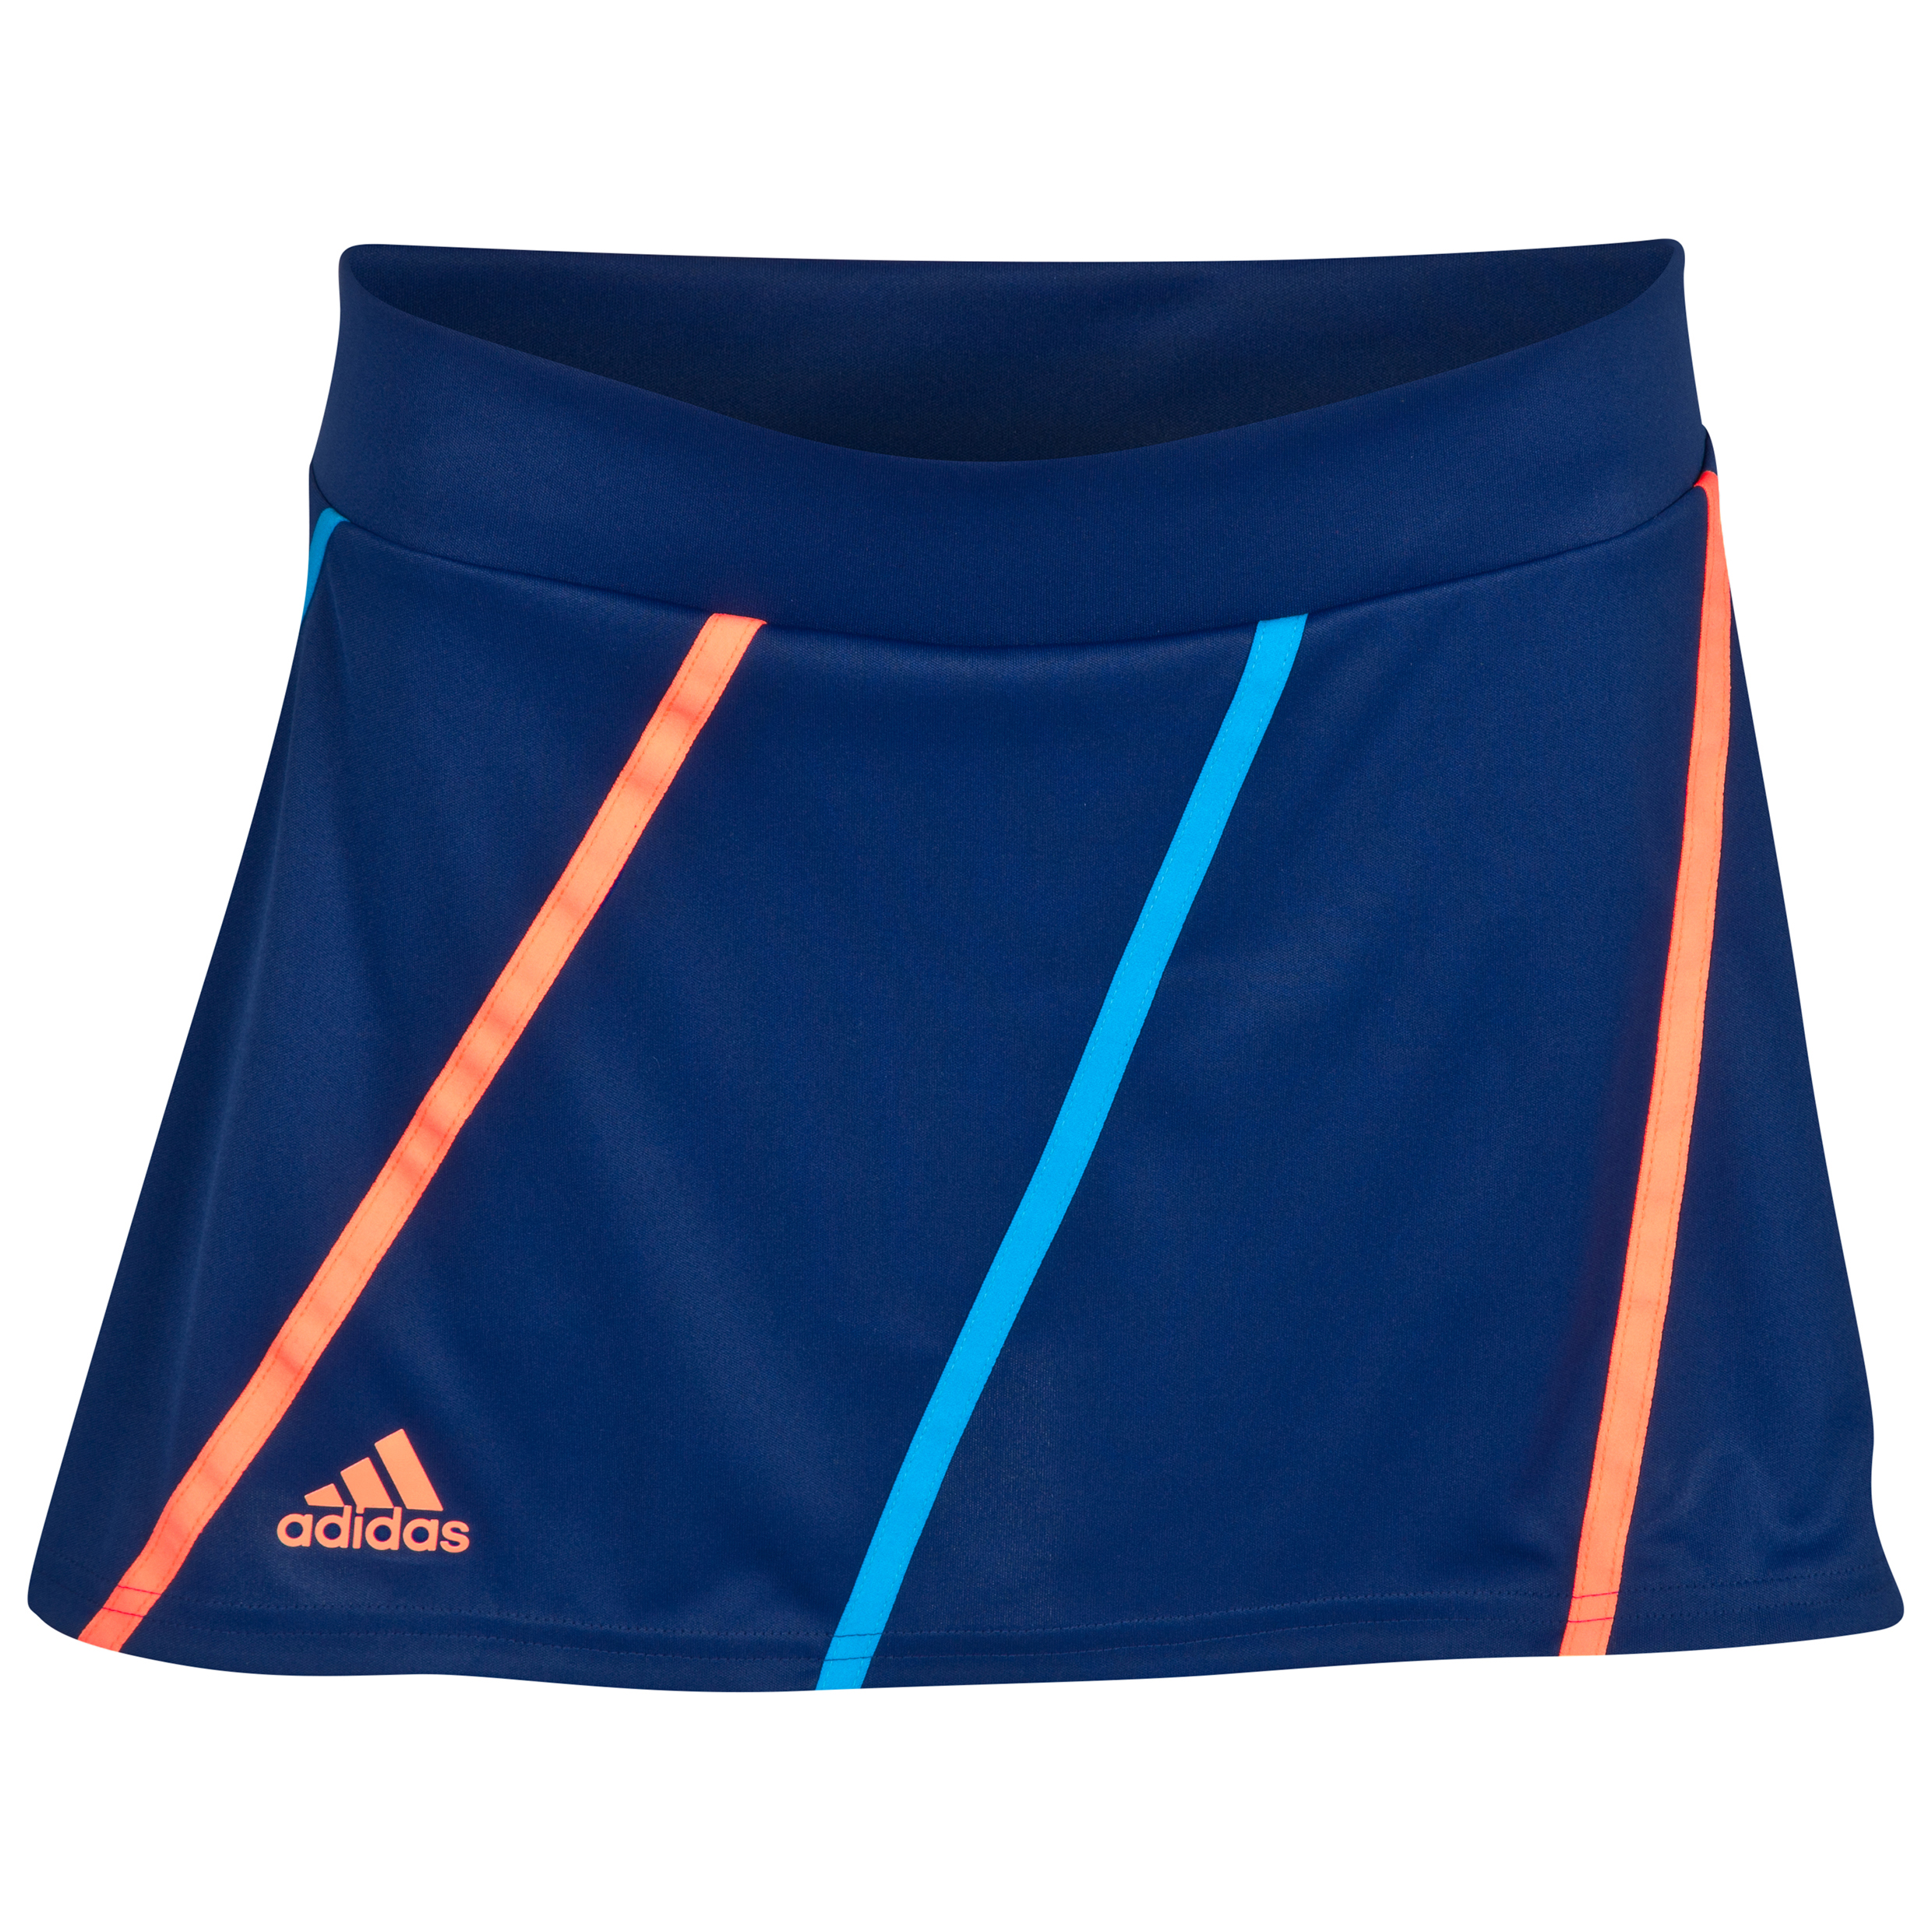 Roland-Garros Adidas On Court Skirt - Womens Navy